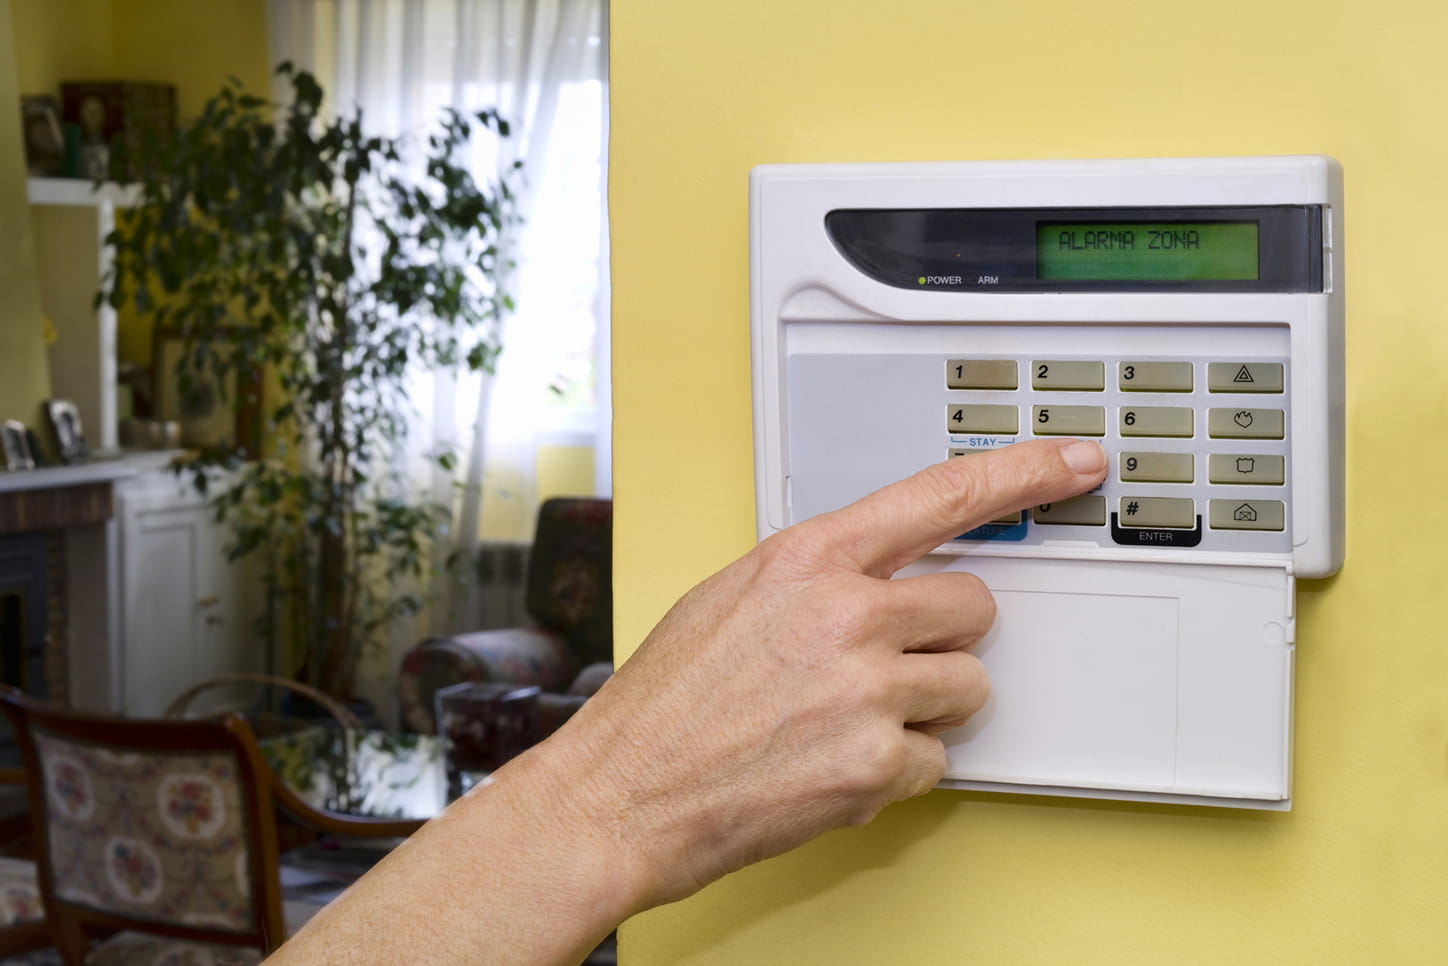 8 Easy Ways to Prevent Home Security False Alarms | SafeWise